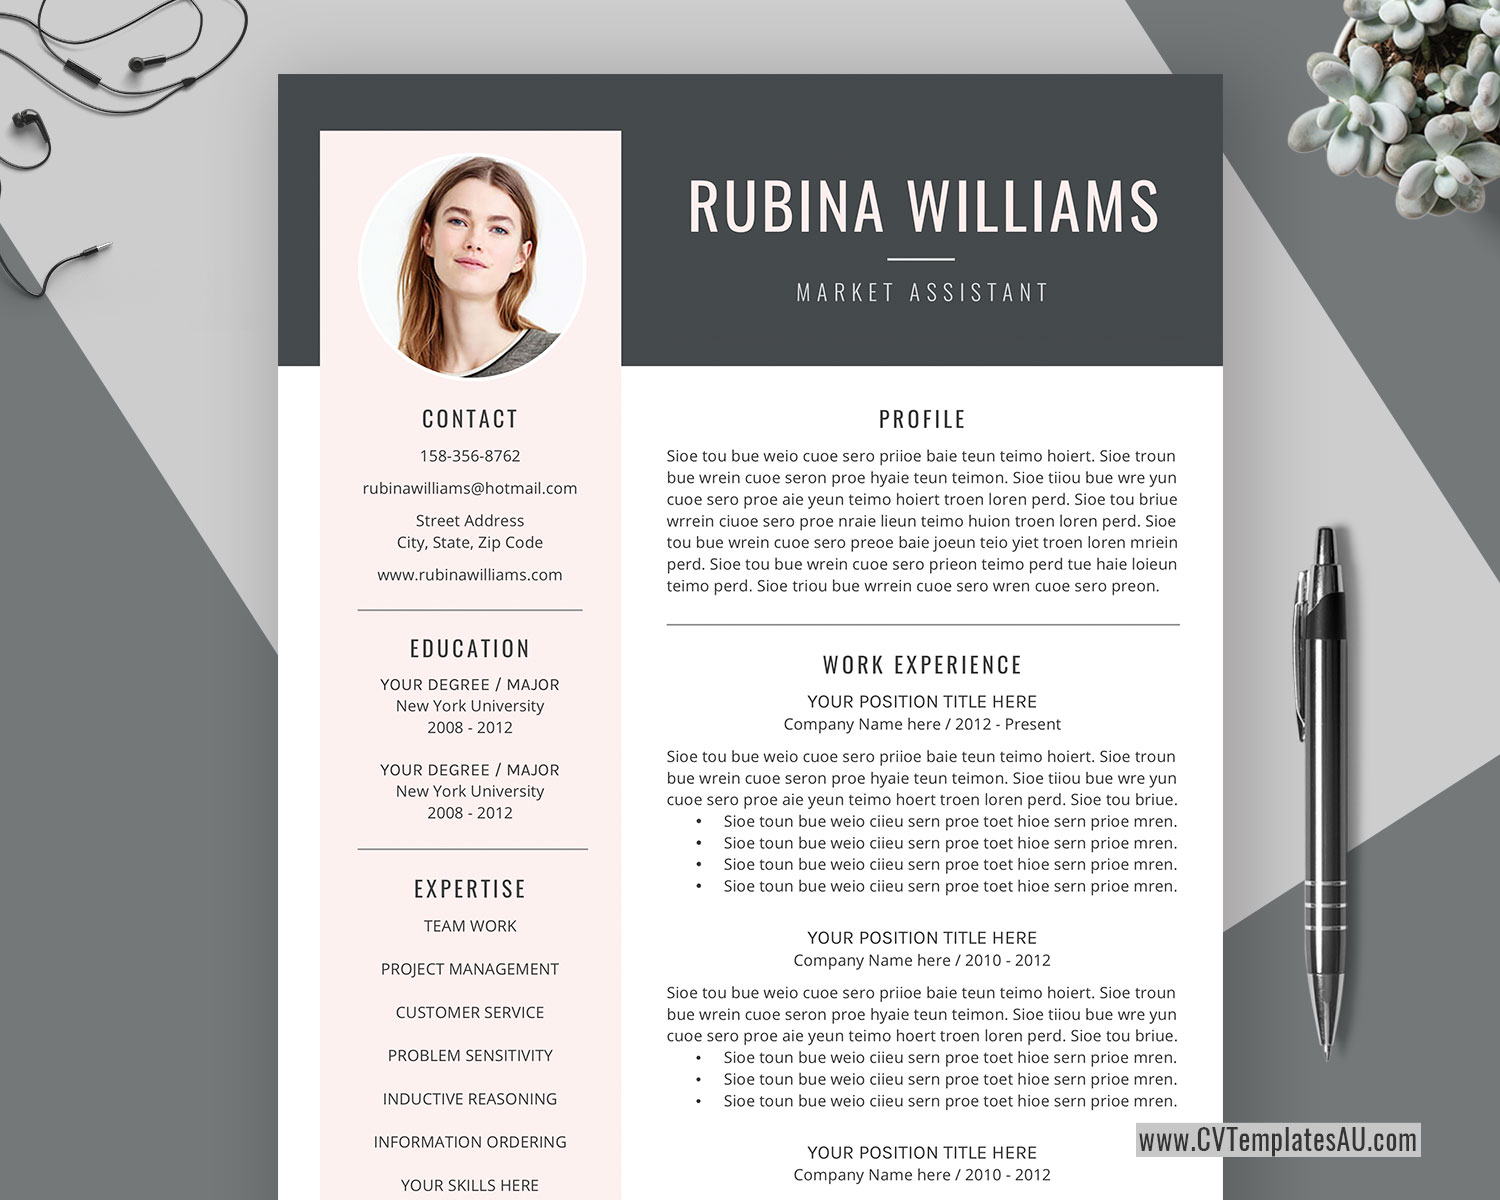 Creative Cv Template For Microsoft Word Cover Letter Curriculum Vitae Template Professional Resume Modern Resume 1 3 Page Resume Editable Resume Instant Download Cvtemplatesau Com